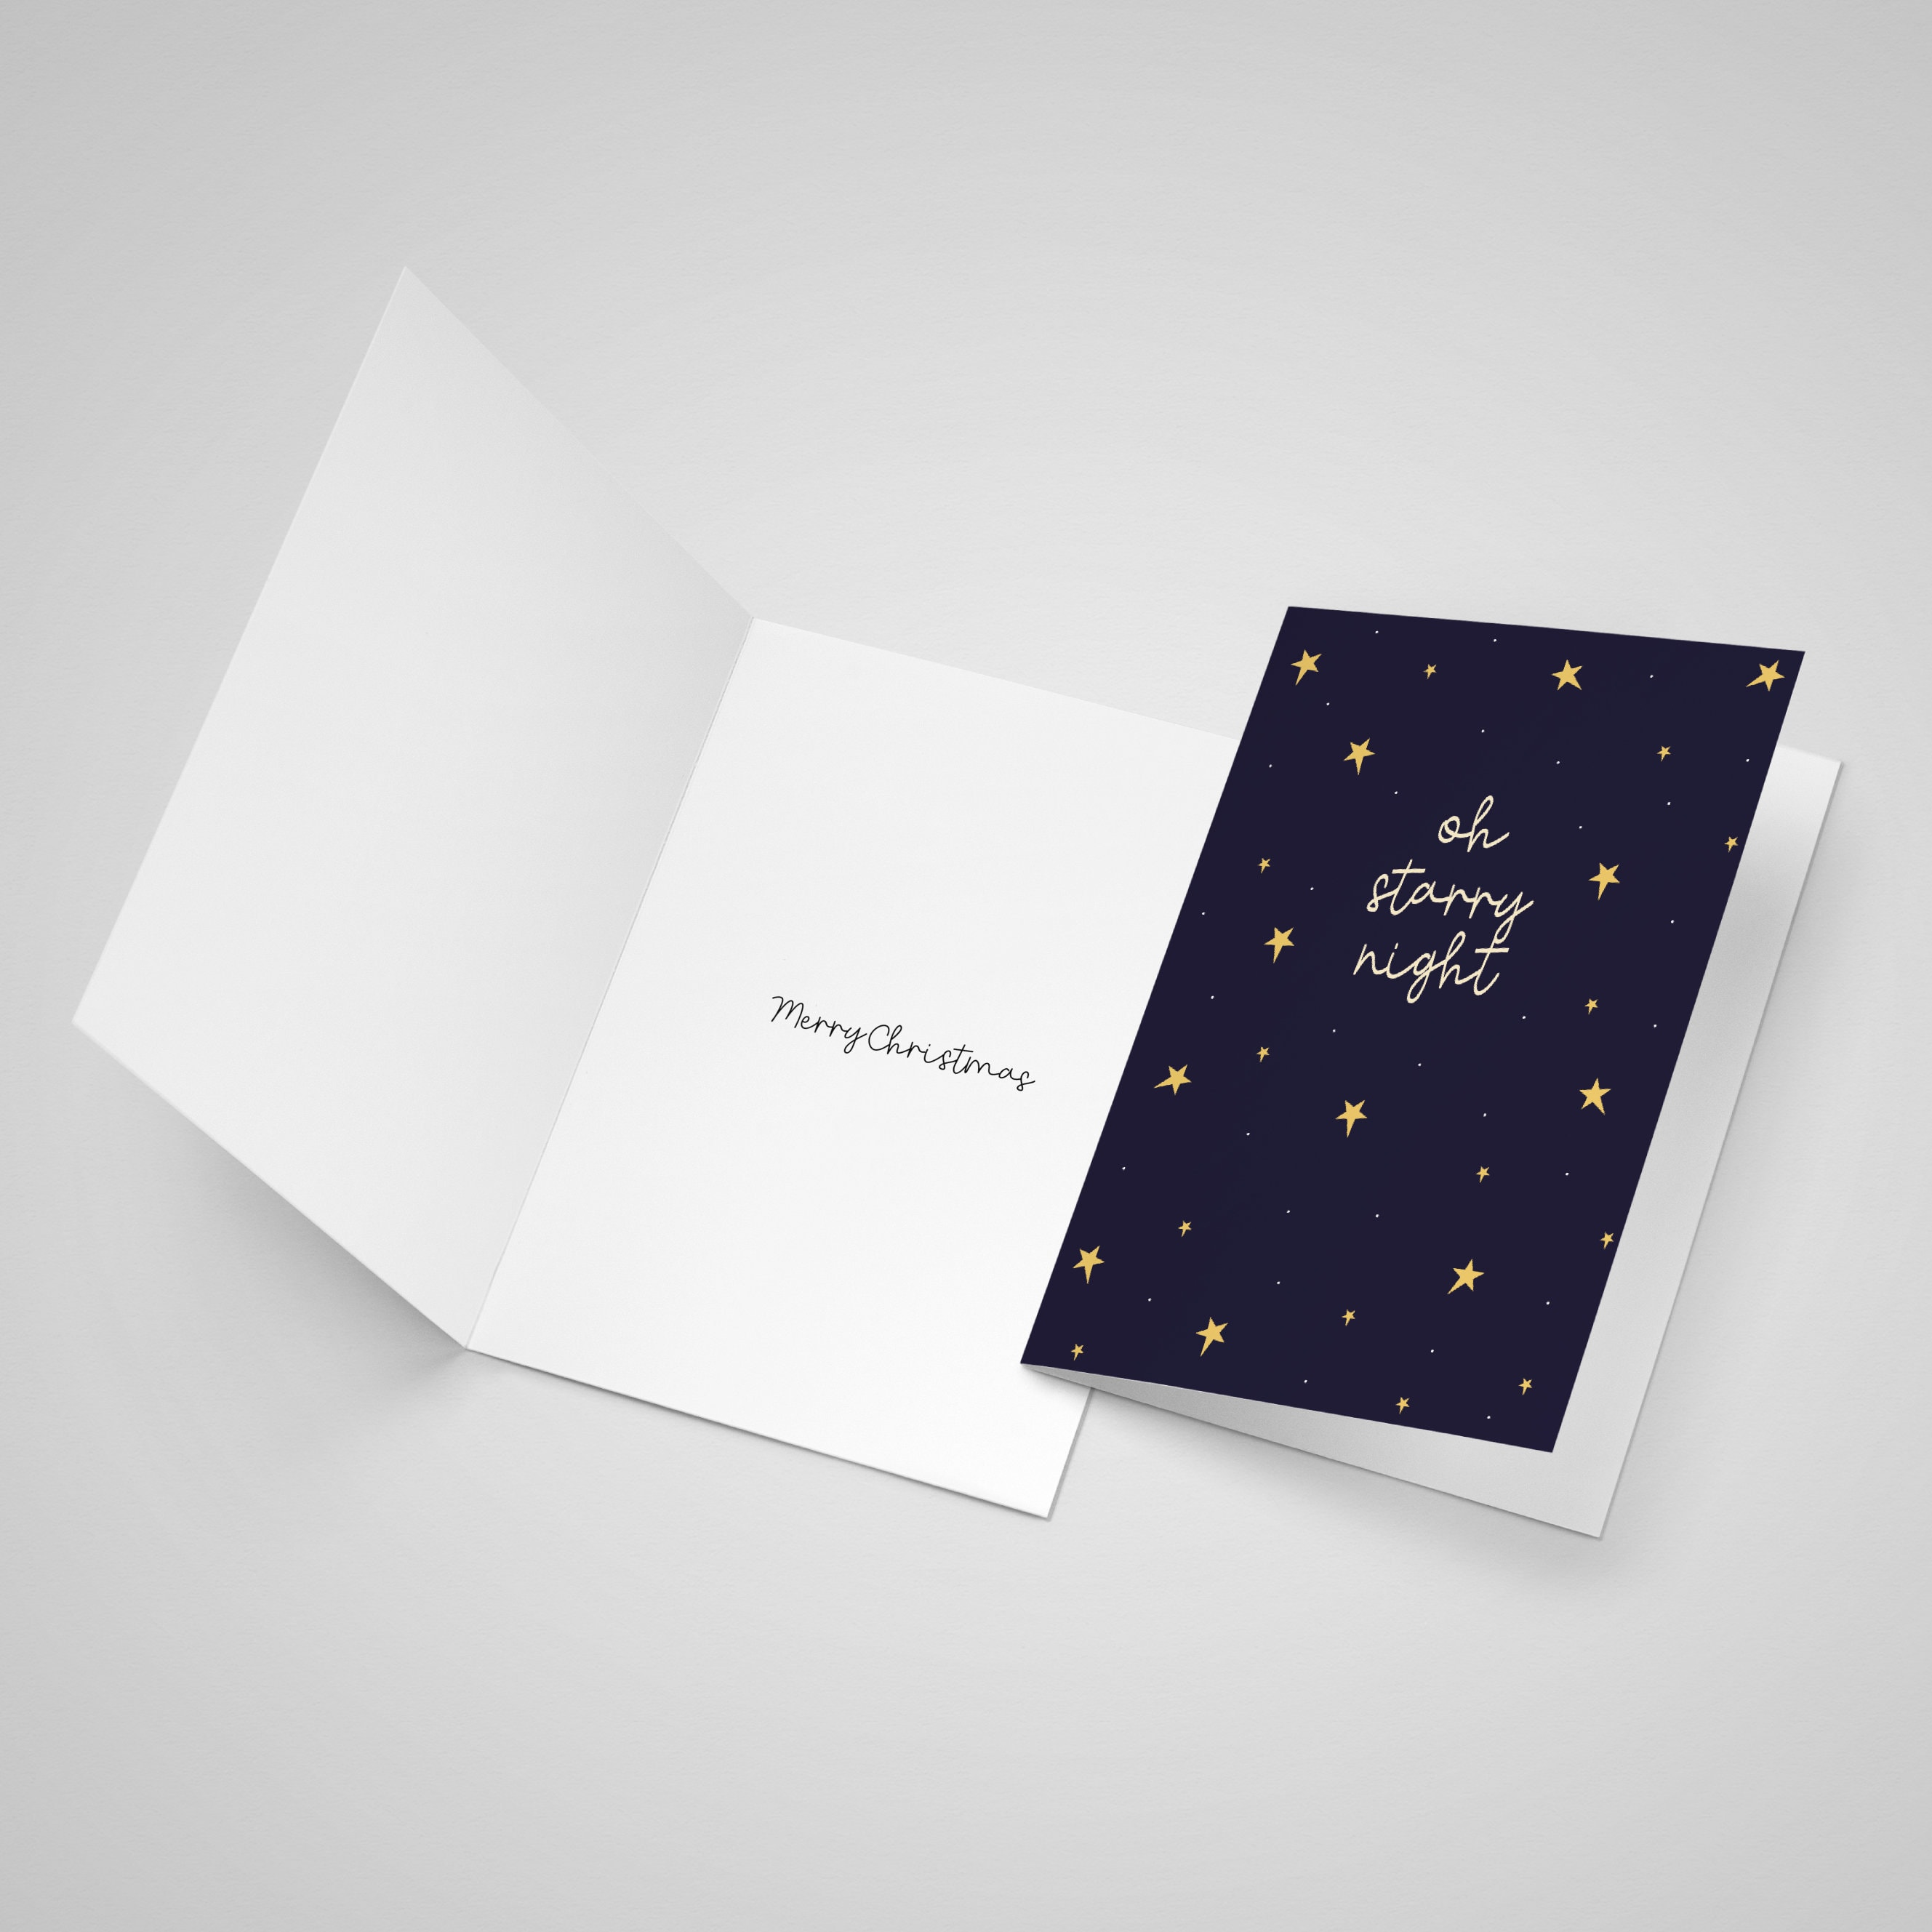 """Open card showing that the inside of the card has a """"Merry Christmas"""" message printed inside"""